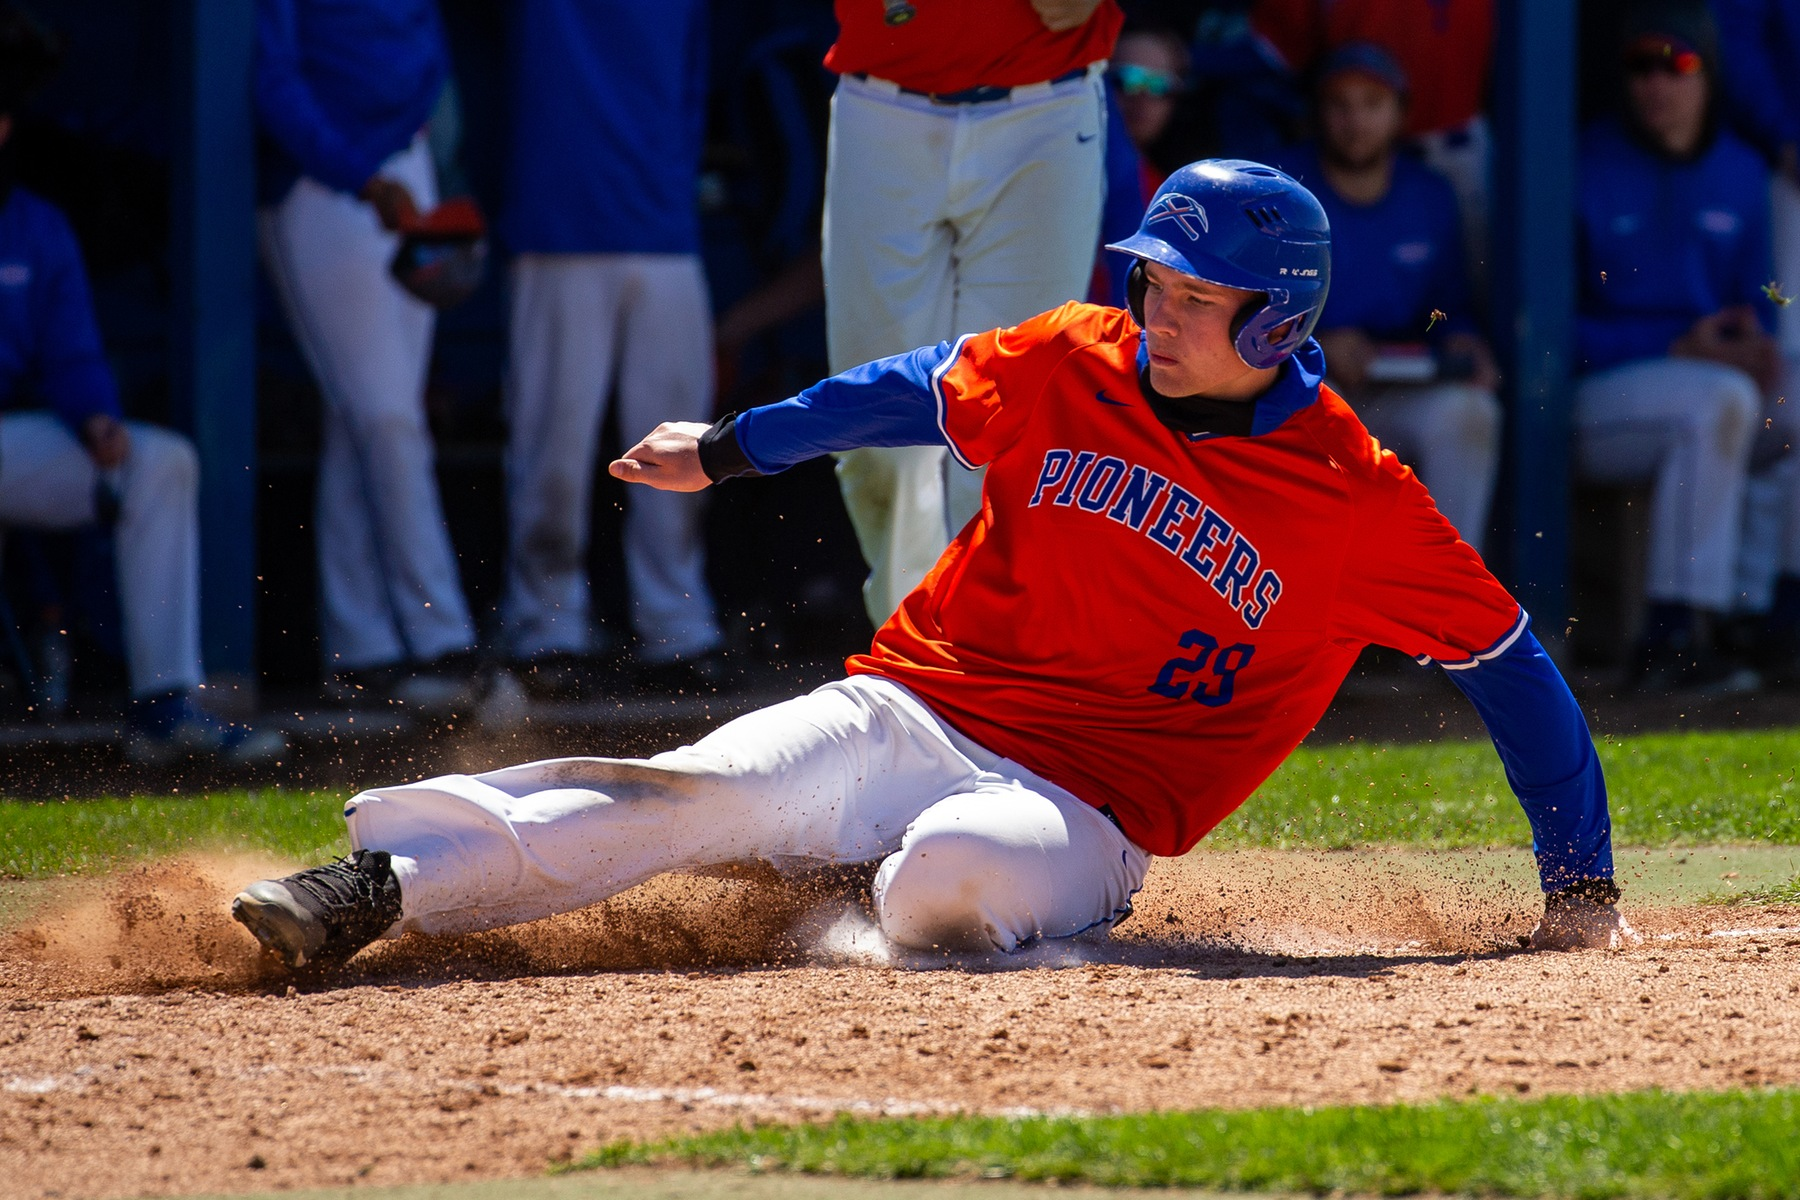 Pioneers fall in extra innings